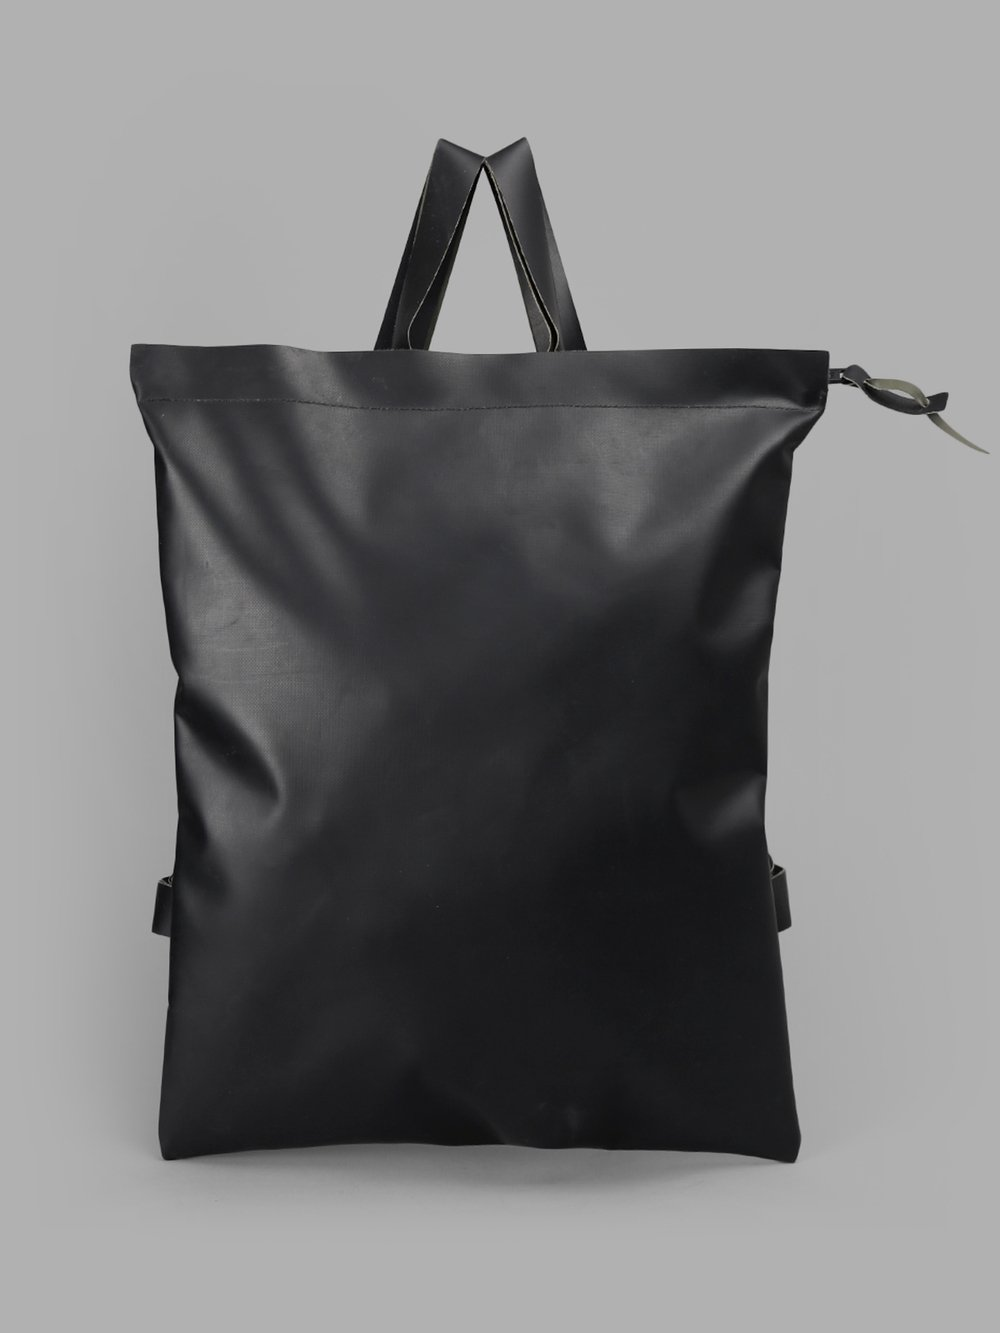 DELLE COSE Delle Cose Black Bakcpack Made Out Of Original Military Rubber